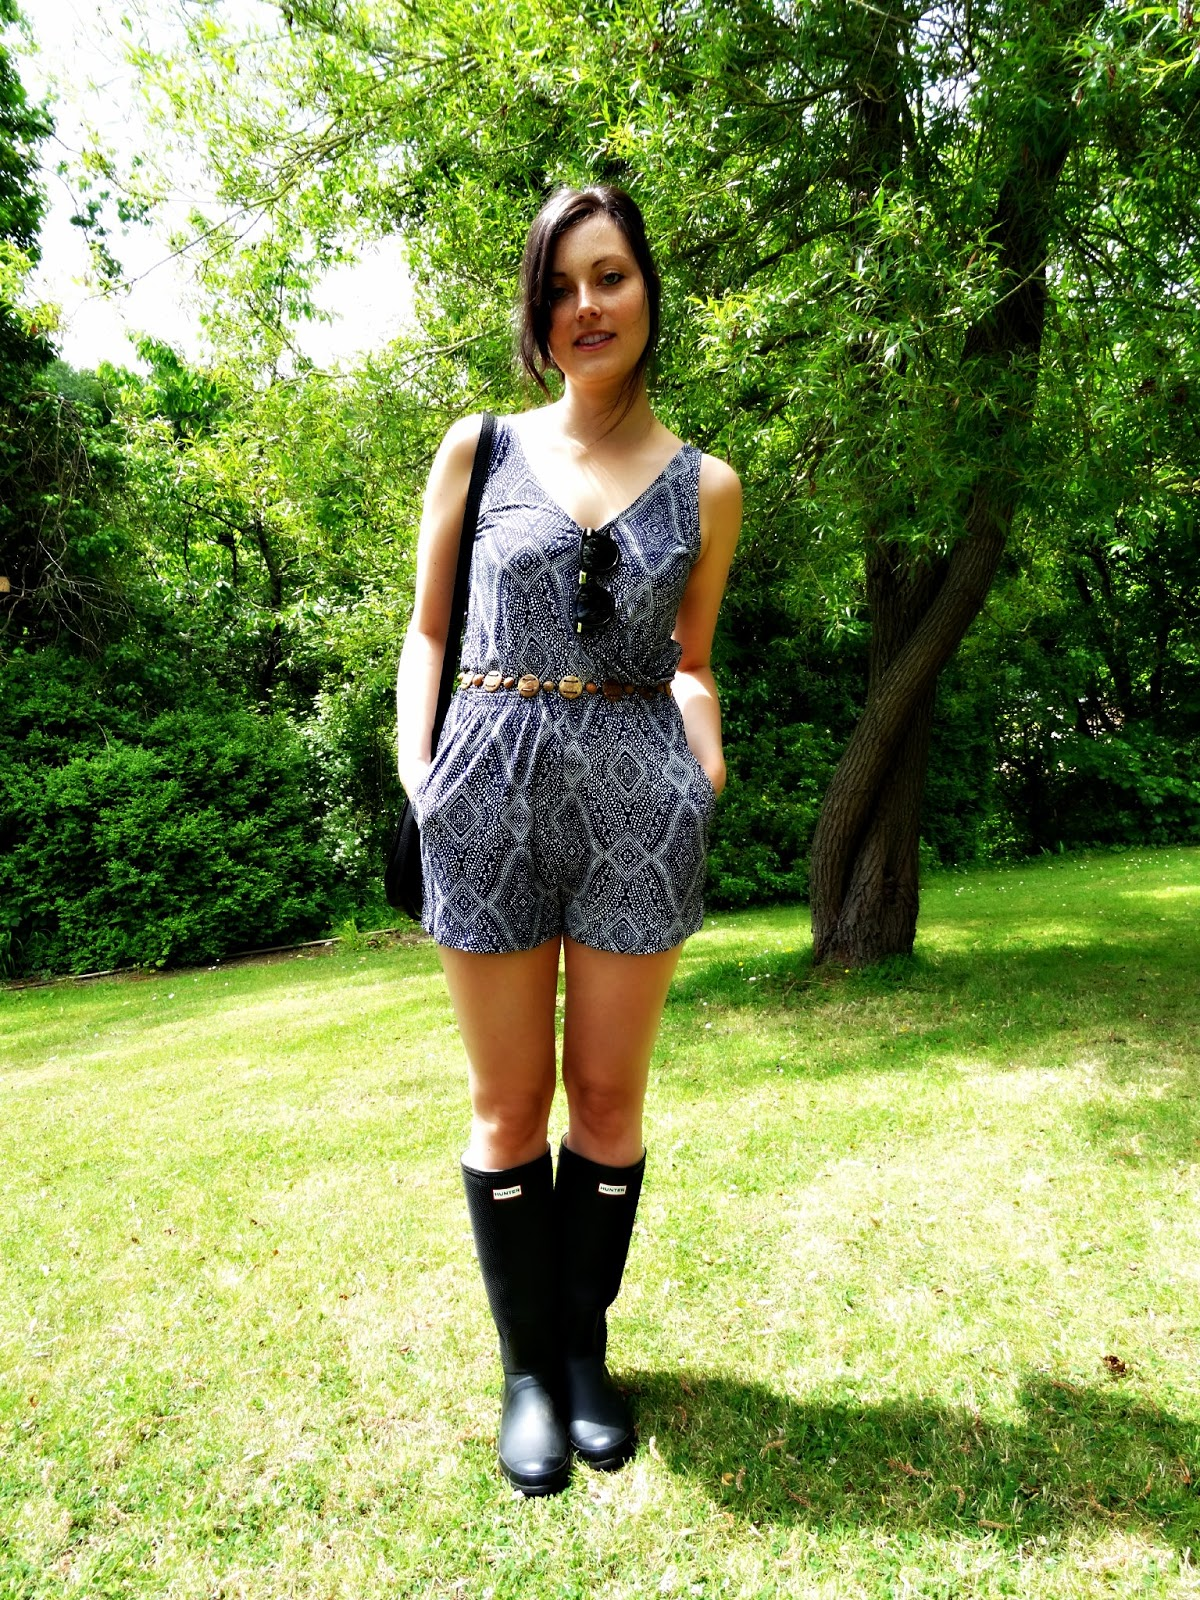 jumpsuit and wellies for festival fashion